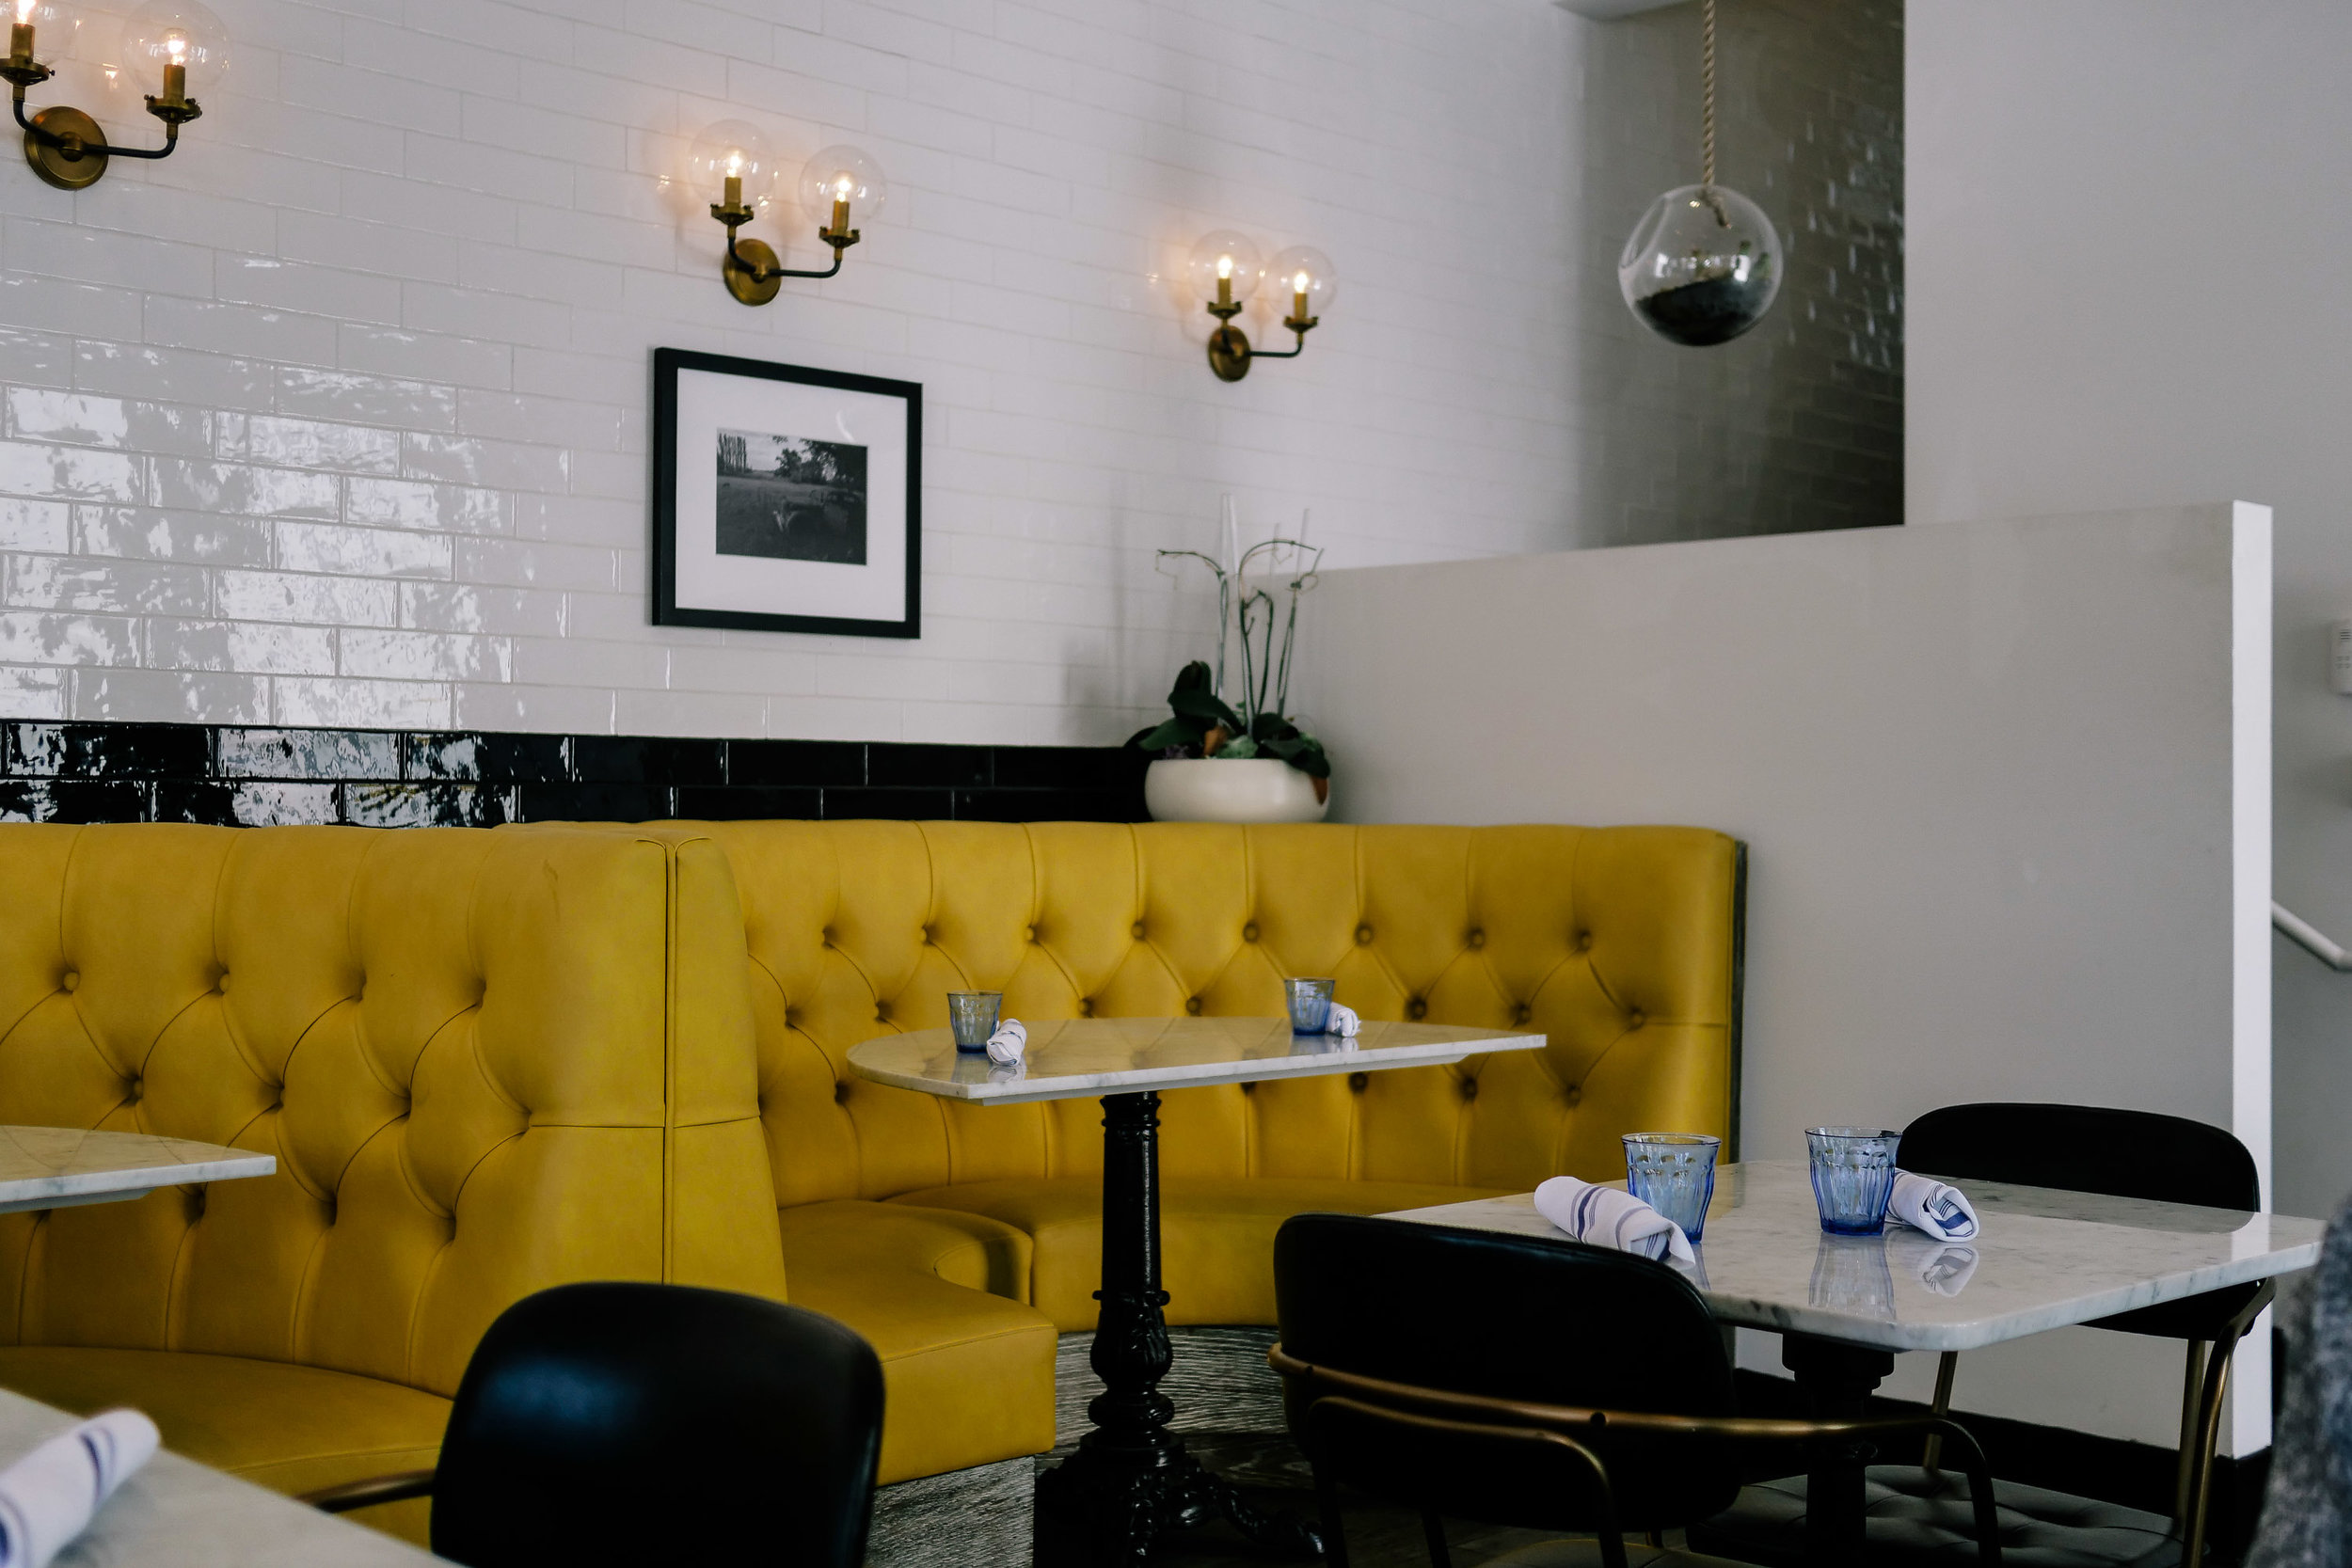 Bright and airy interior decor at   The Butcher, The Daughter and the Cappuccino Maker